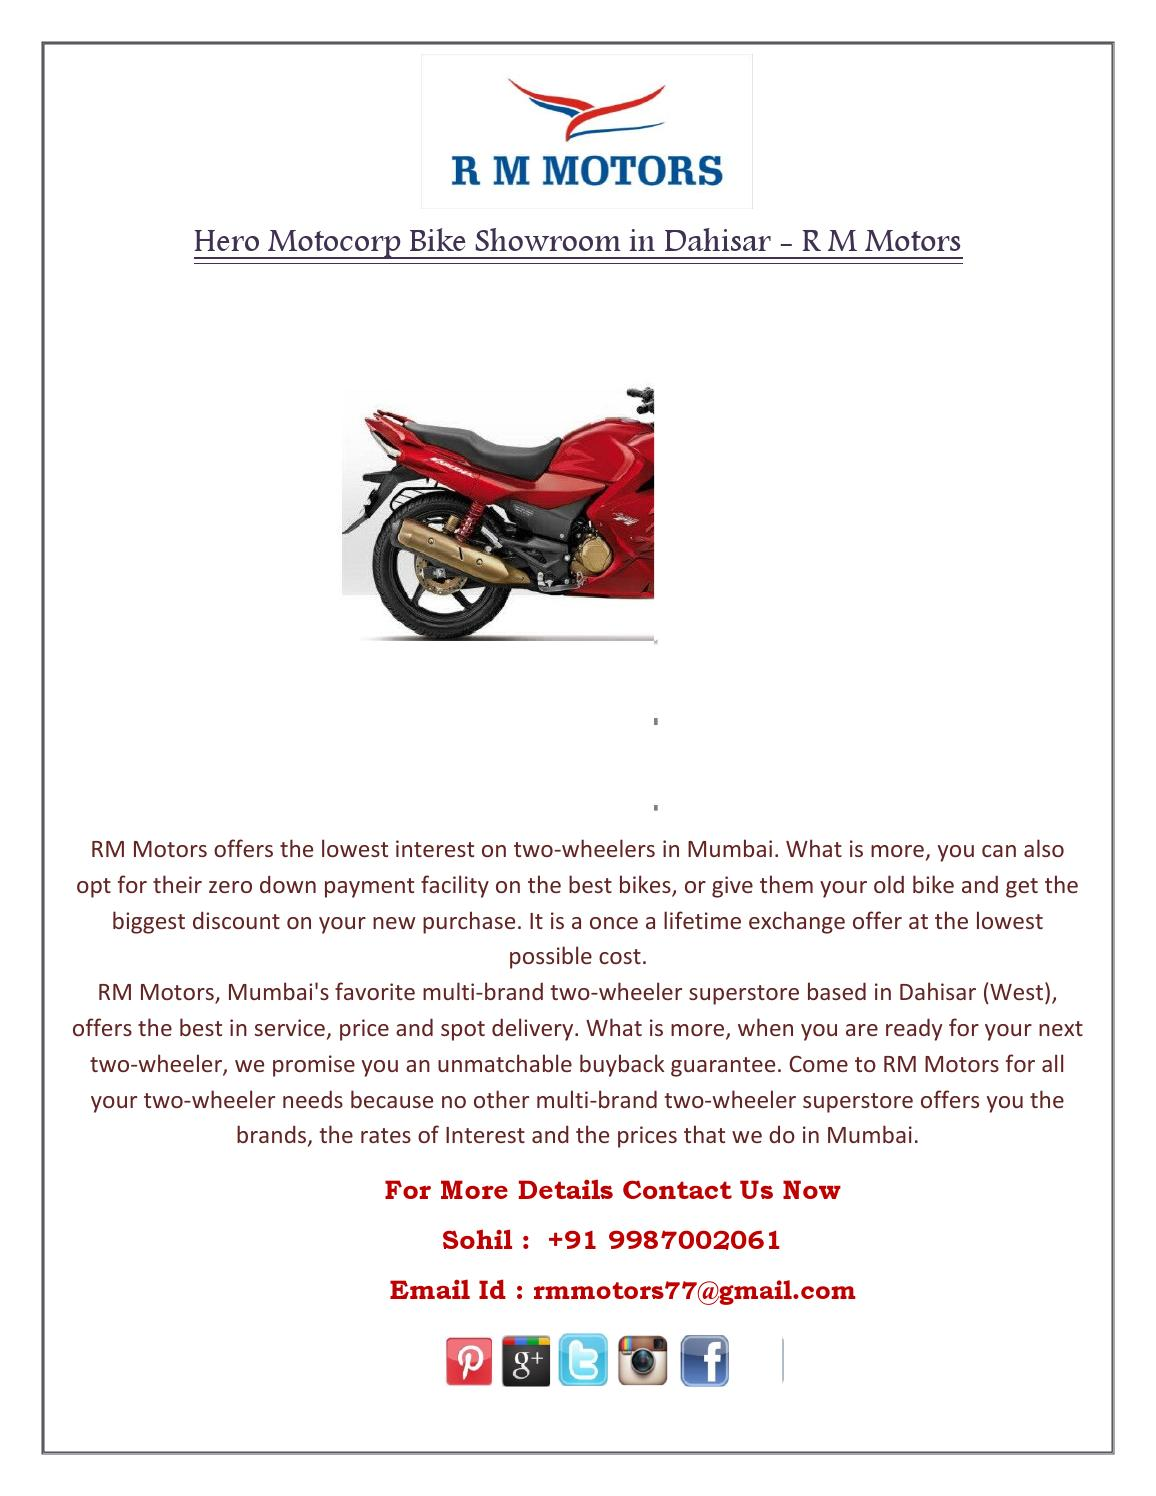 Hero Motocorp Bike Showroom in Dahisar - R M Motors by RM